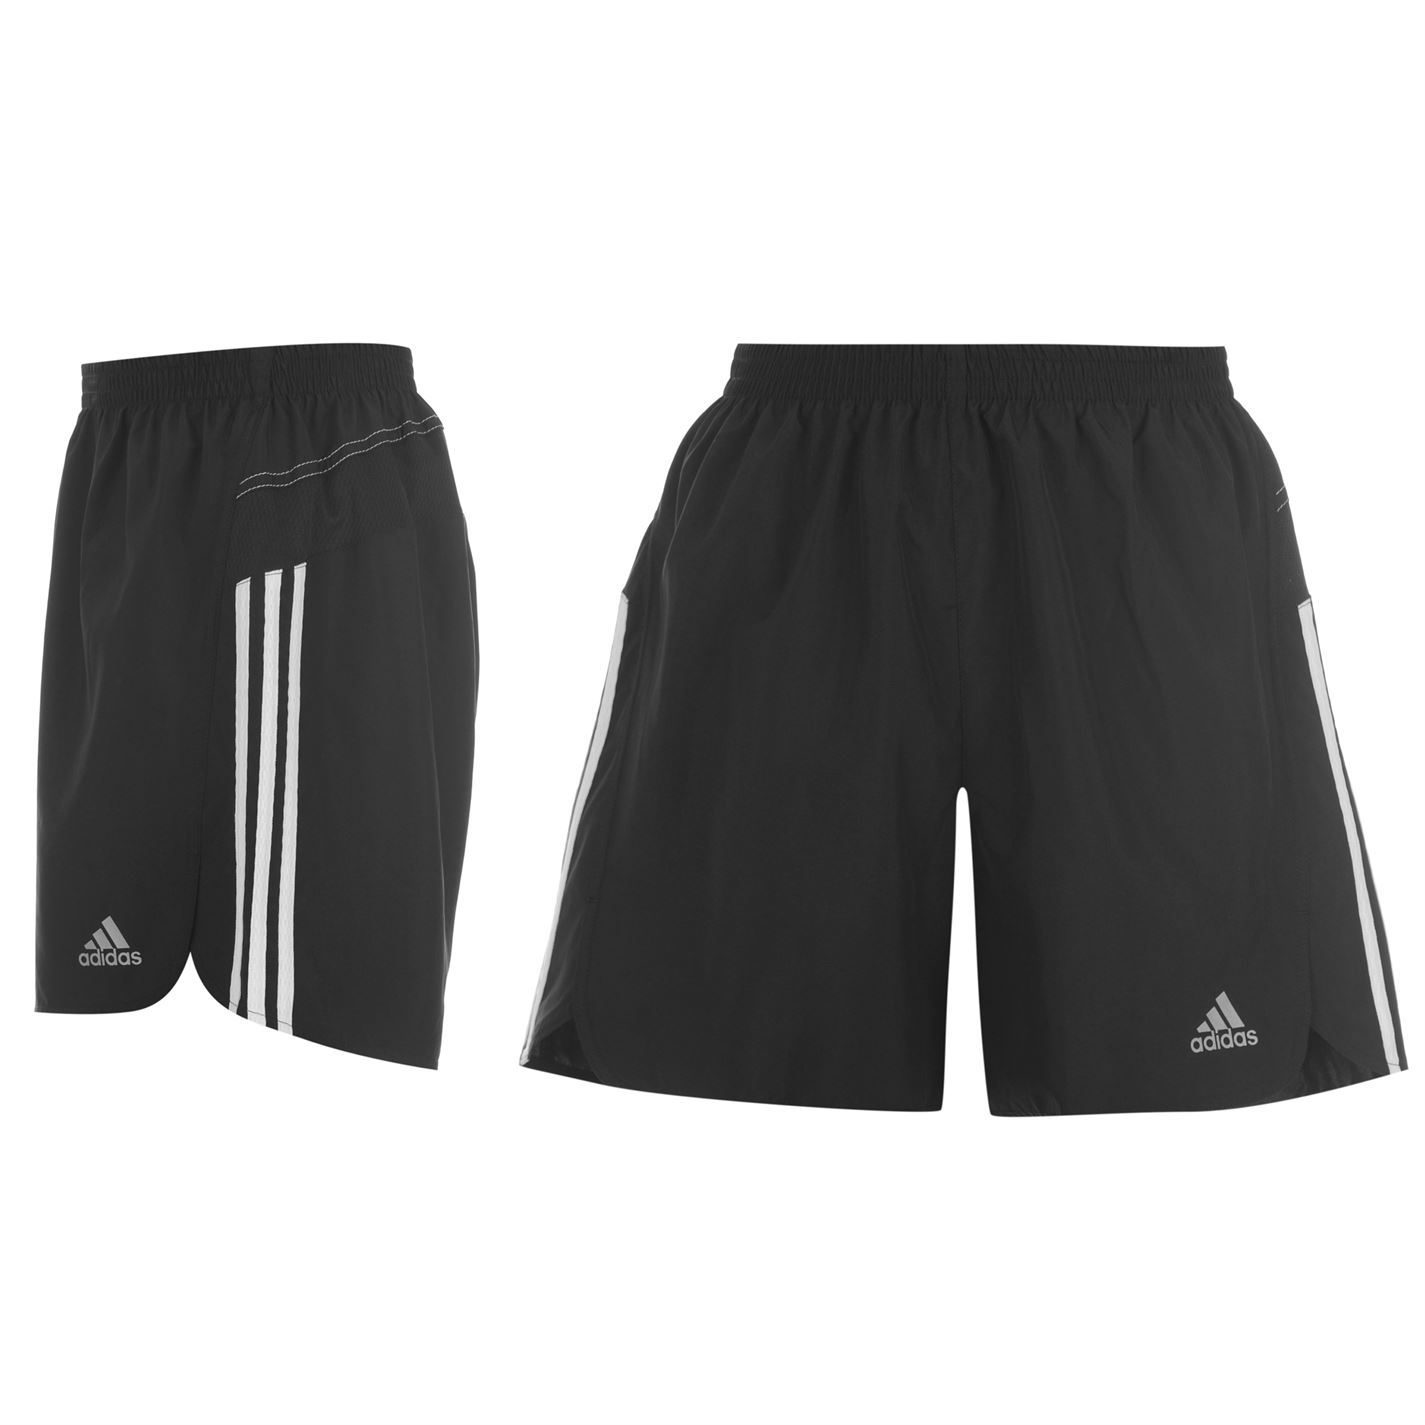 adidas climalite response 5 inch running shorts mens black. Black Bedroom Furniture Sets. Home Design Ideas